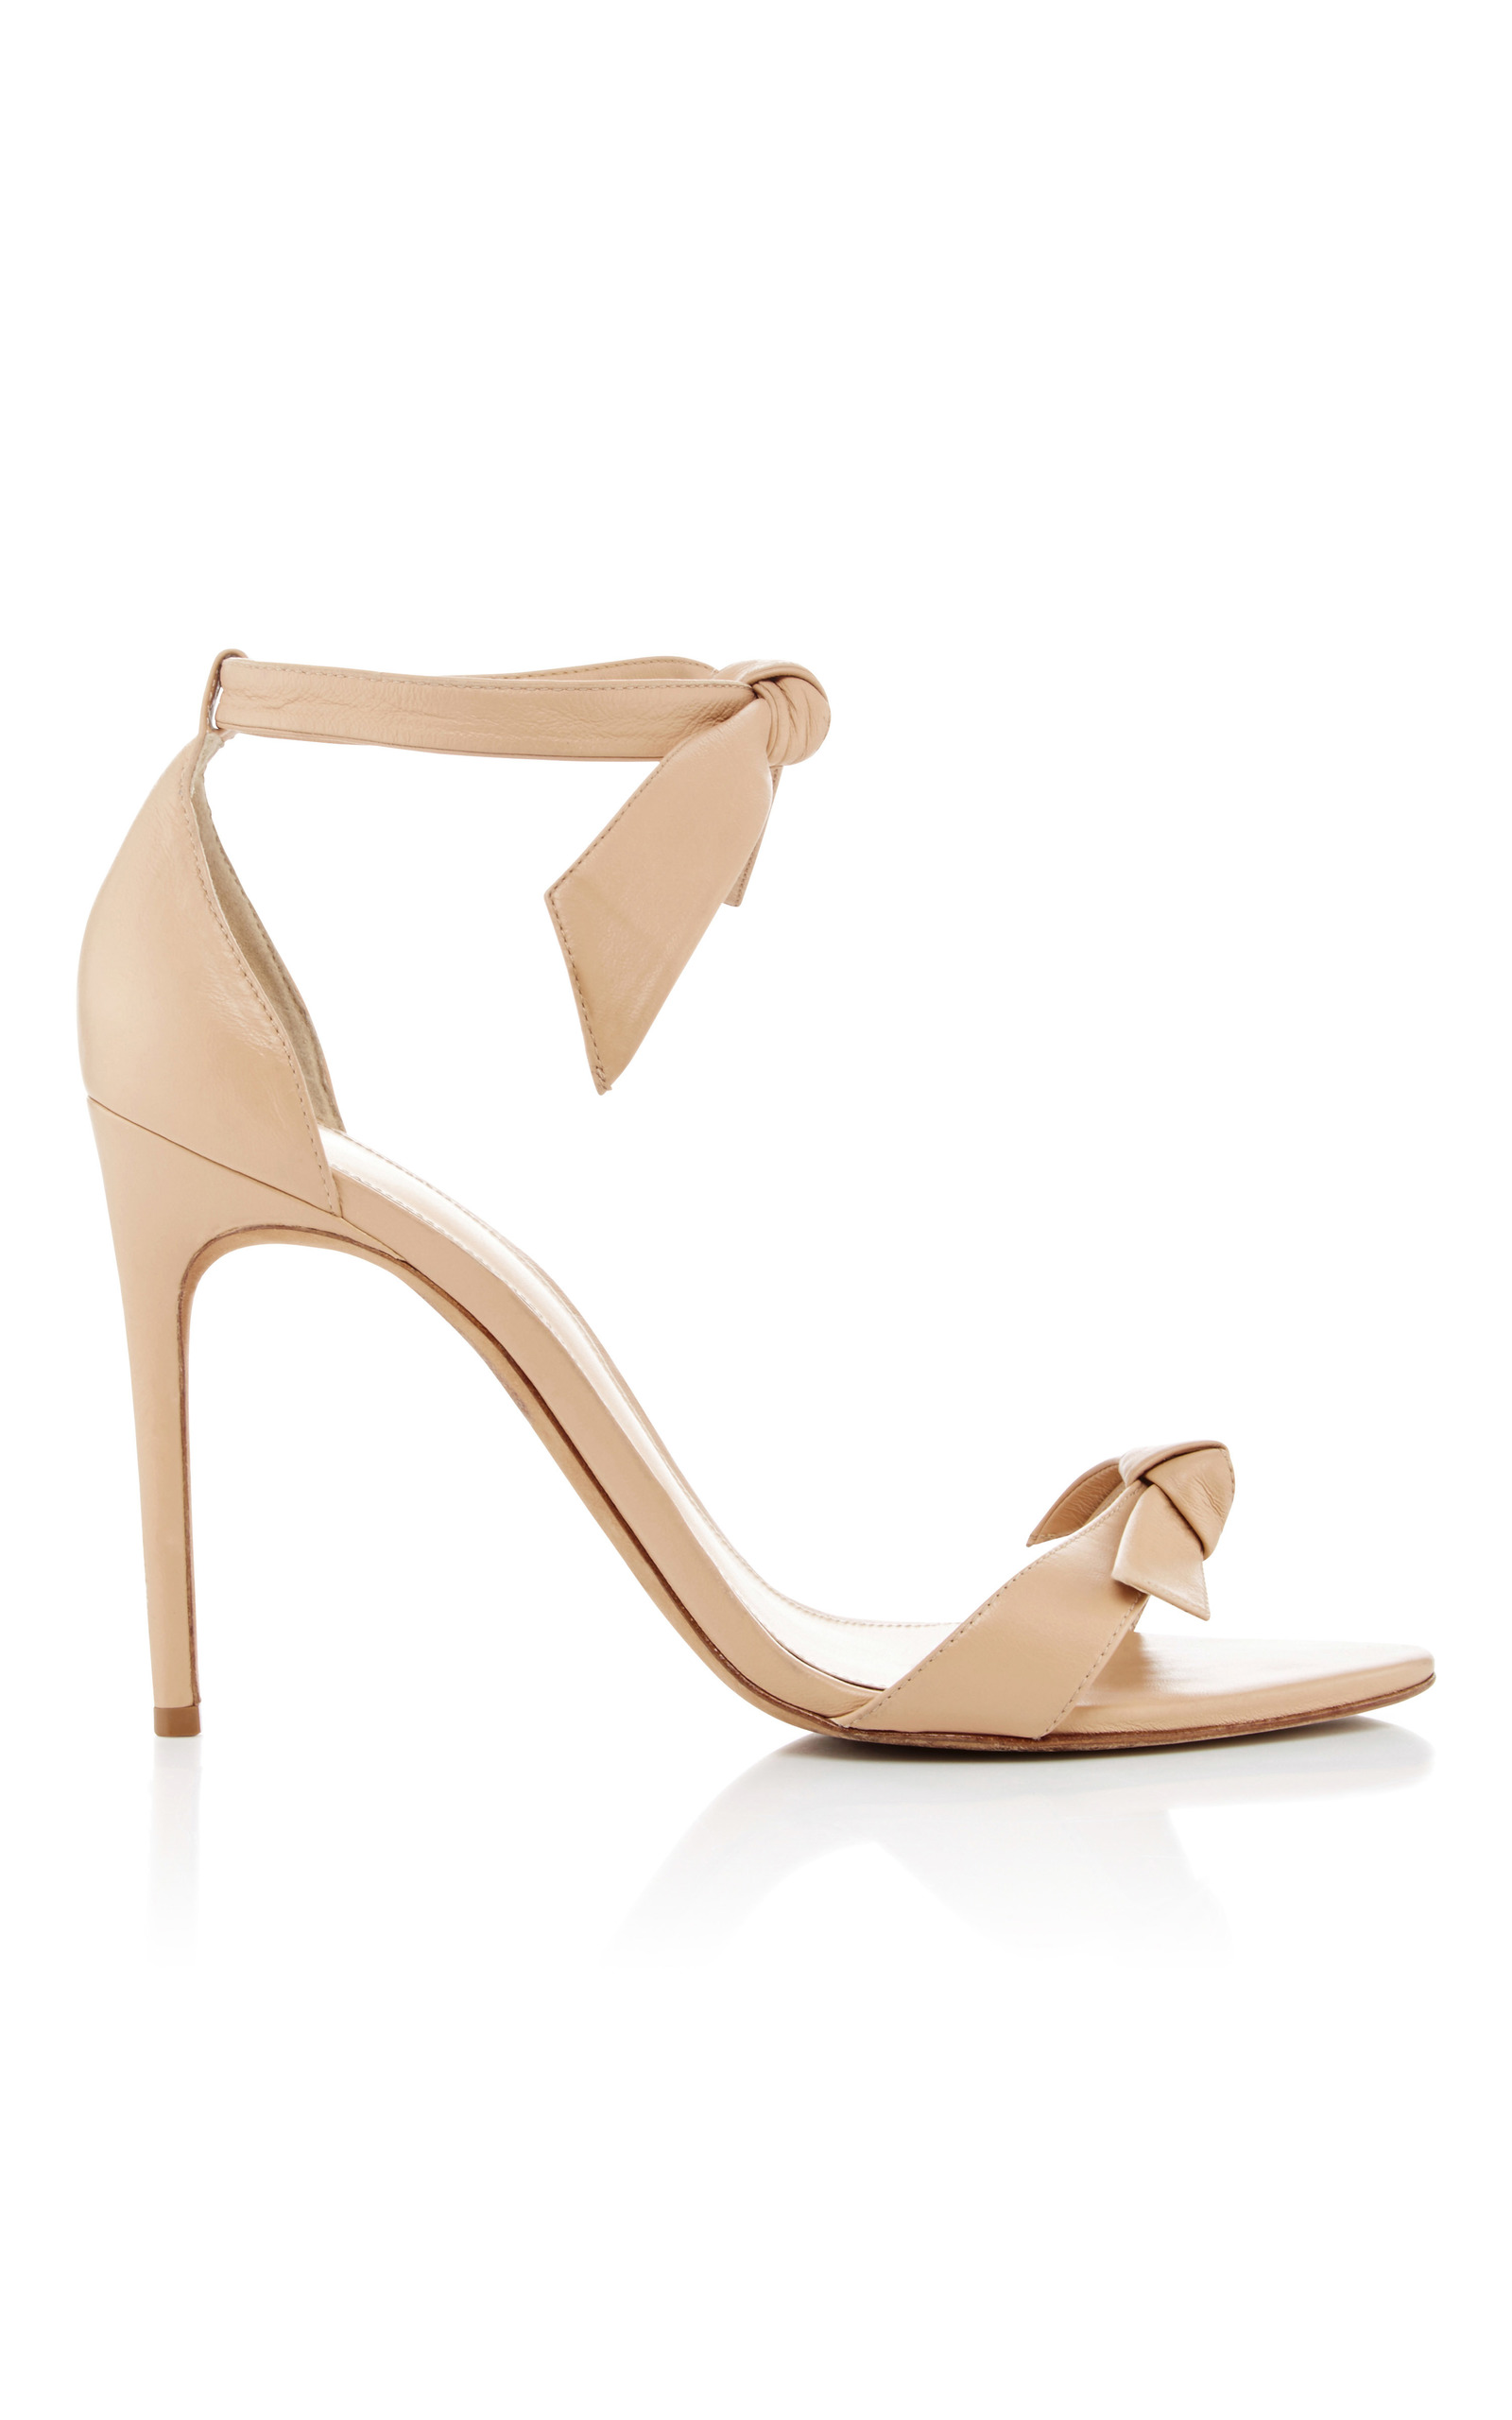 ALEXANDRE BIRMAN Clarita Bow-Embellished Leather Sandals, Nude